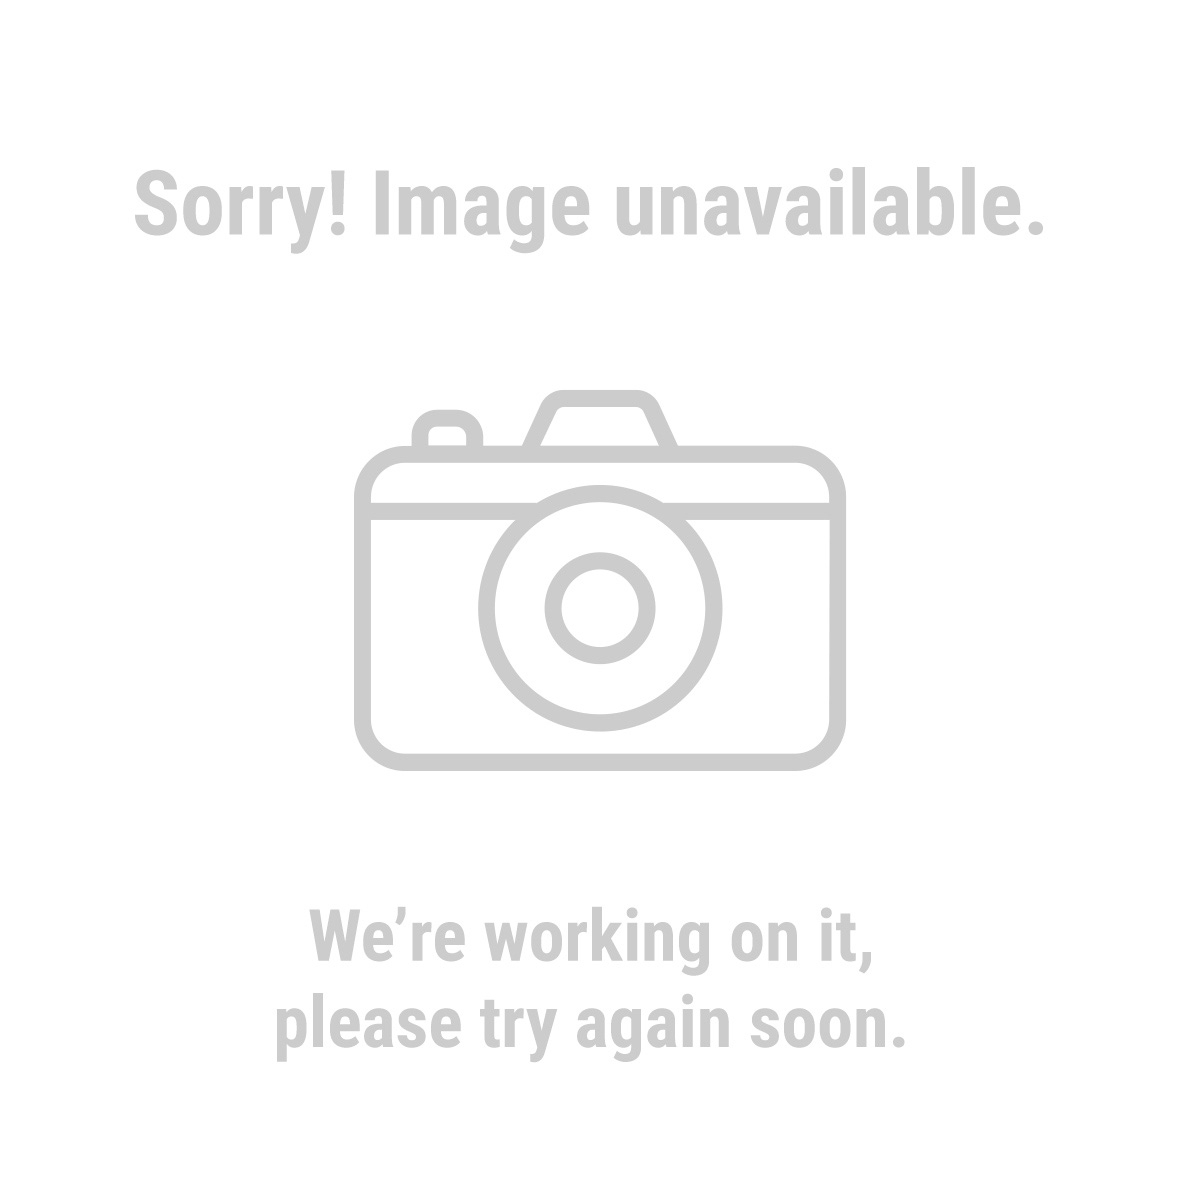 Ship to Shore 95563 2.5 Liter Ultrasonic Cleaner